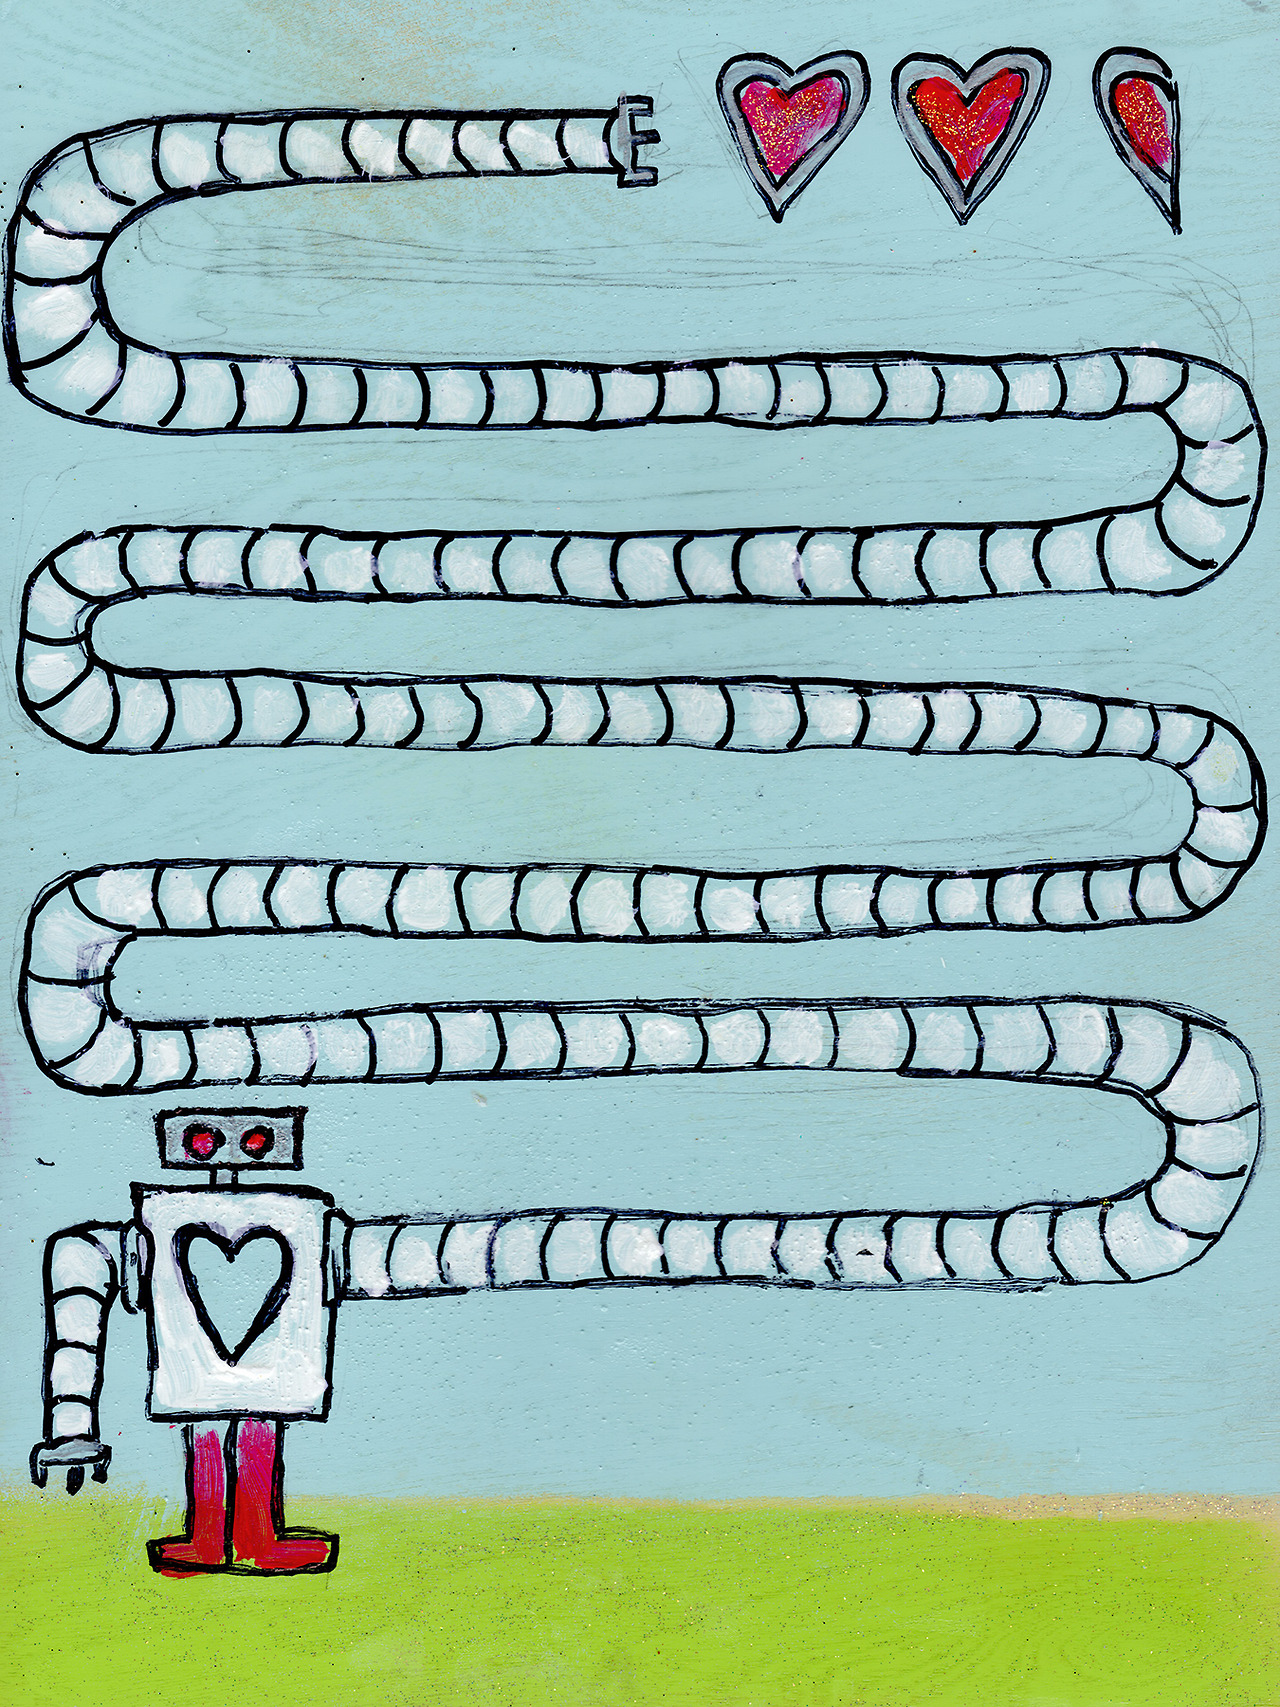 "4/8/13 -  Stealing a Love Refill .   Some days you just want to make something a bit whimsical.   9"" x 12"" Acrylic paint, sharpie, pencil, polyurethane, spray paint, glitter on wood panel.    Available to purchase here:    http://taylorwinder.bigcartel.com   SOLD.   Prints available here:  http://society6.com/taylorwinder"